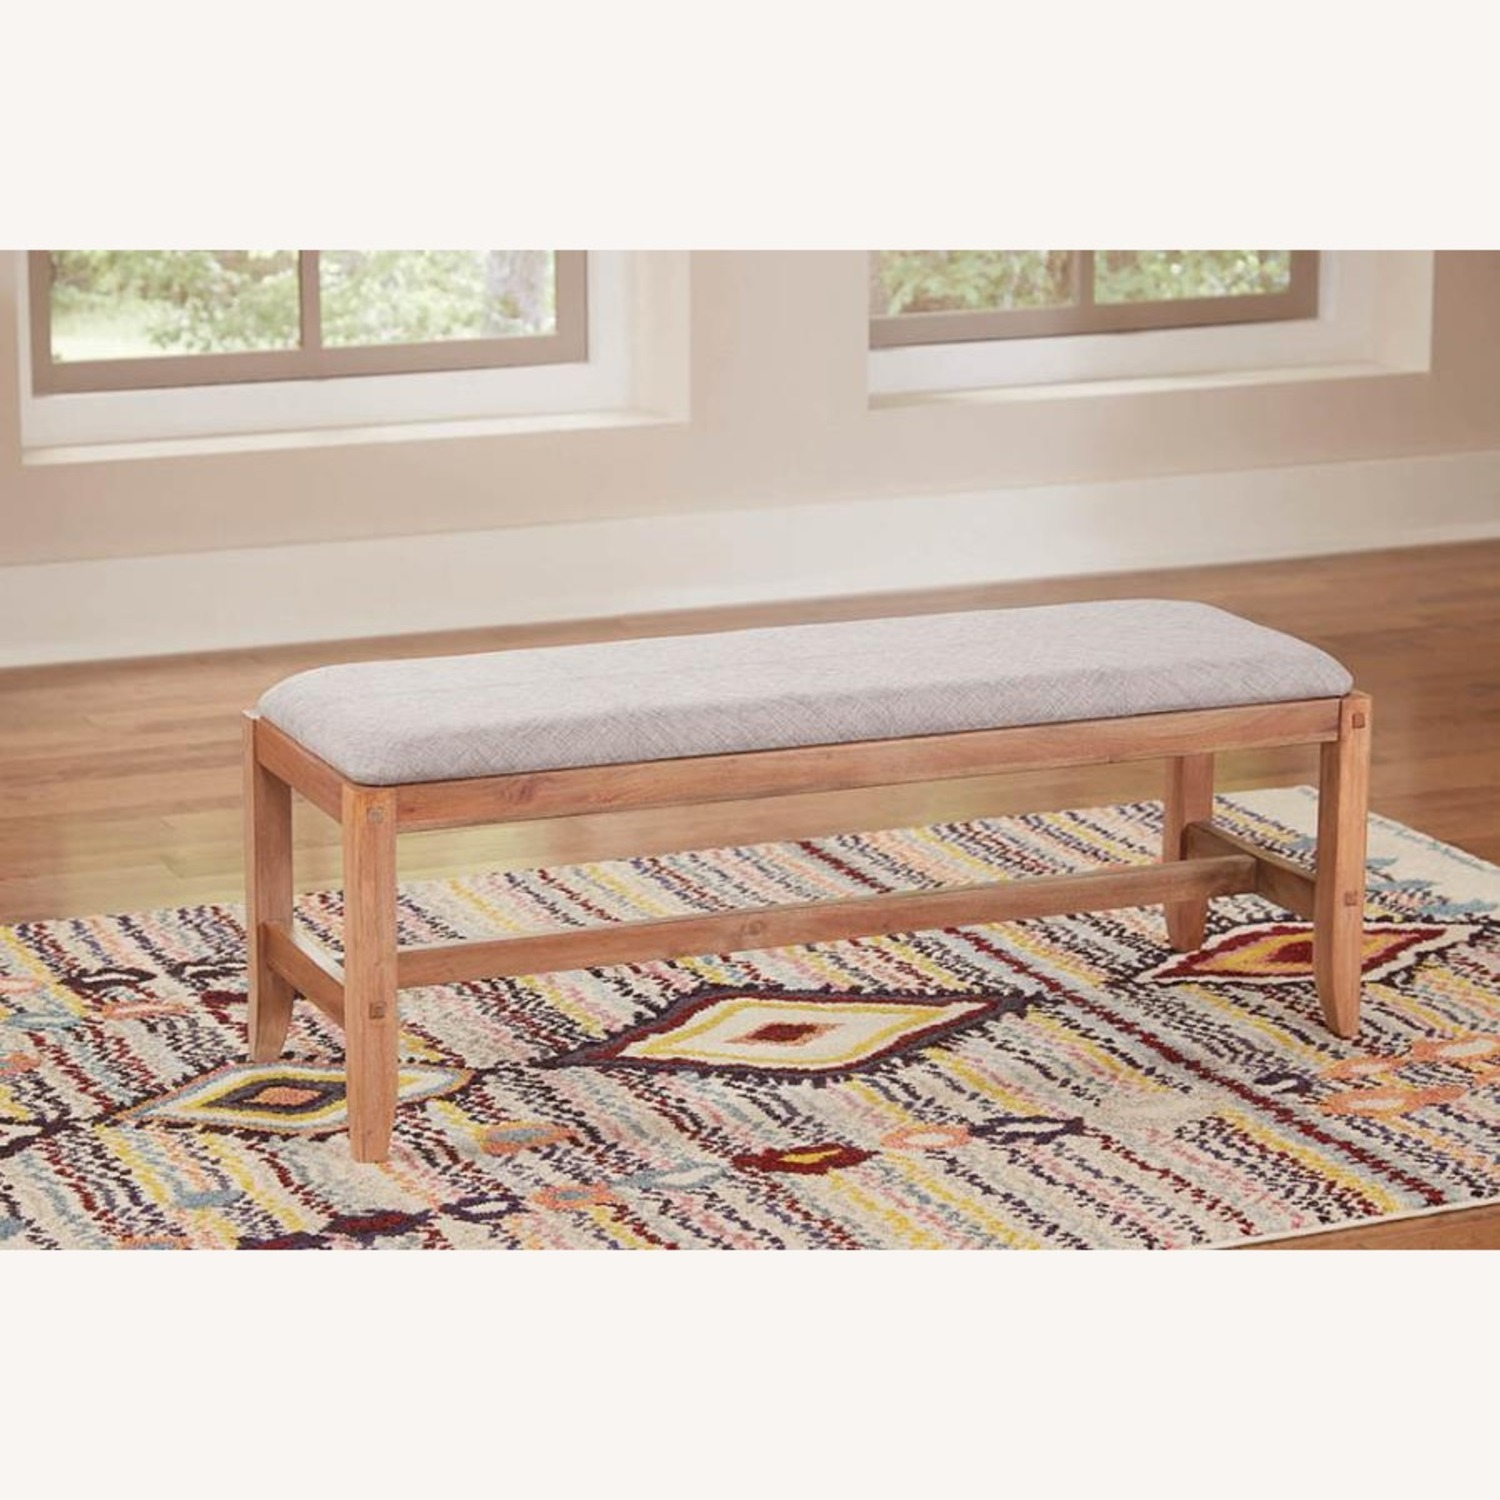 Bench In Natural White Washed Finish - image-3